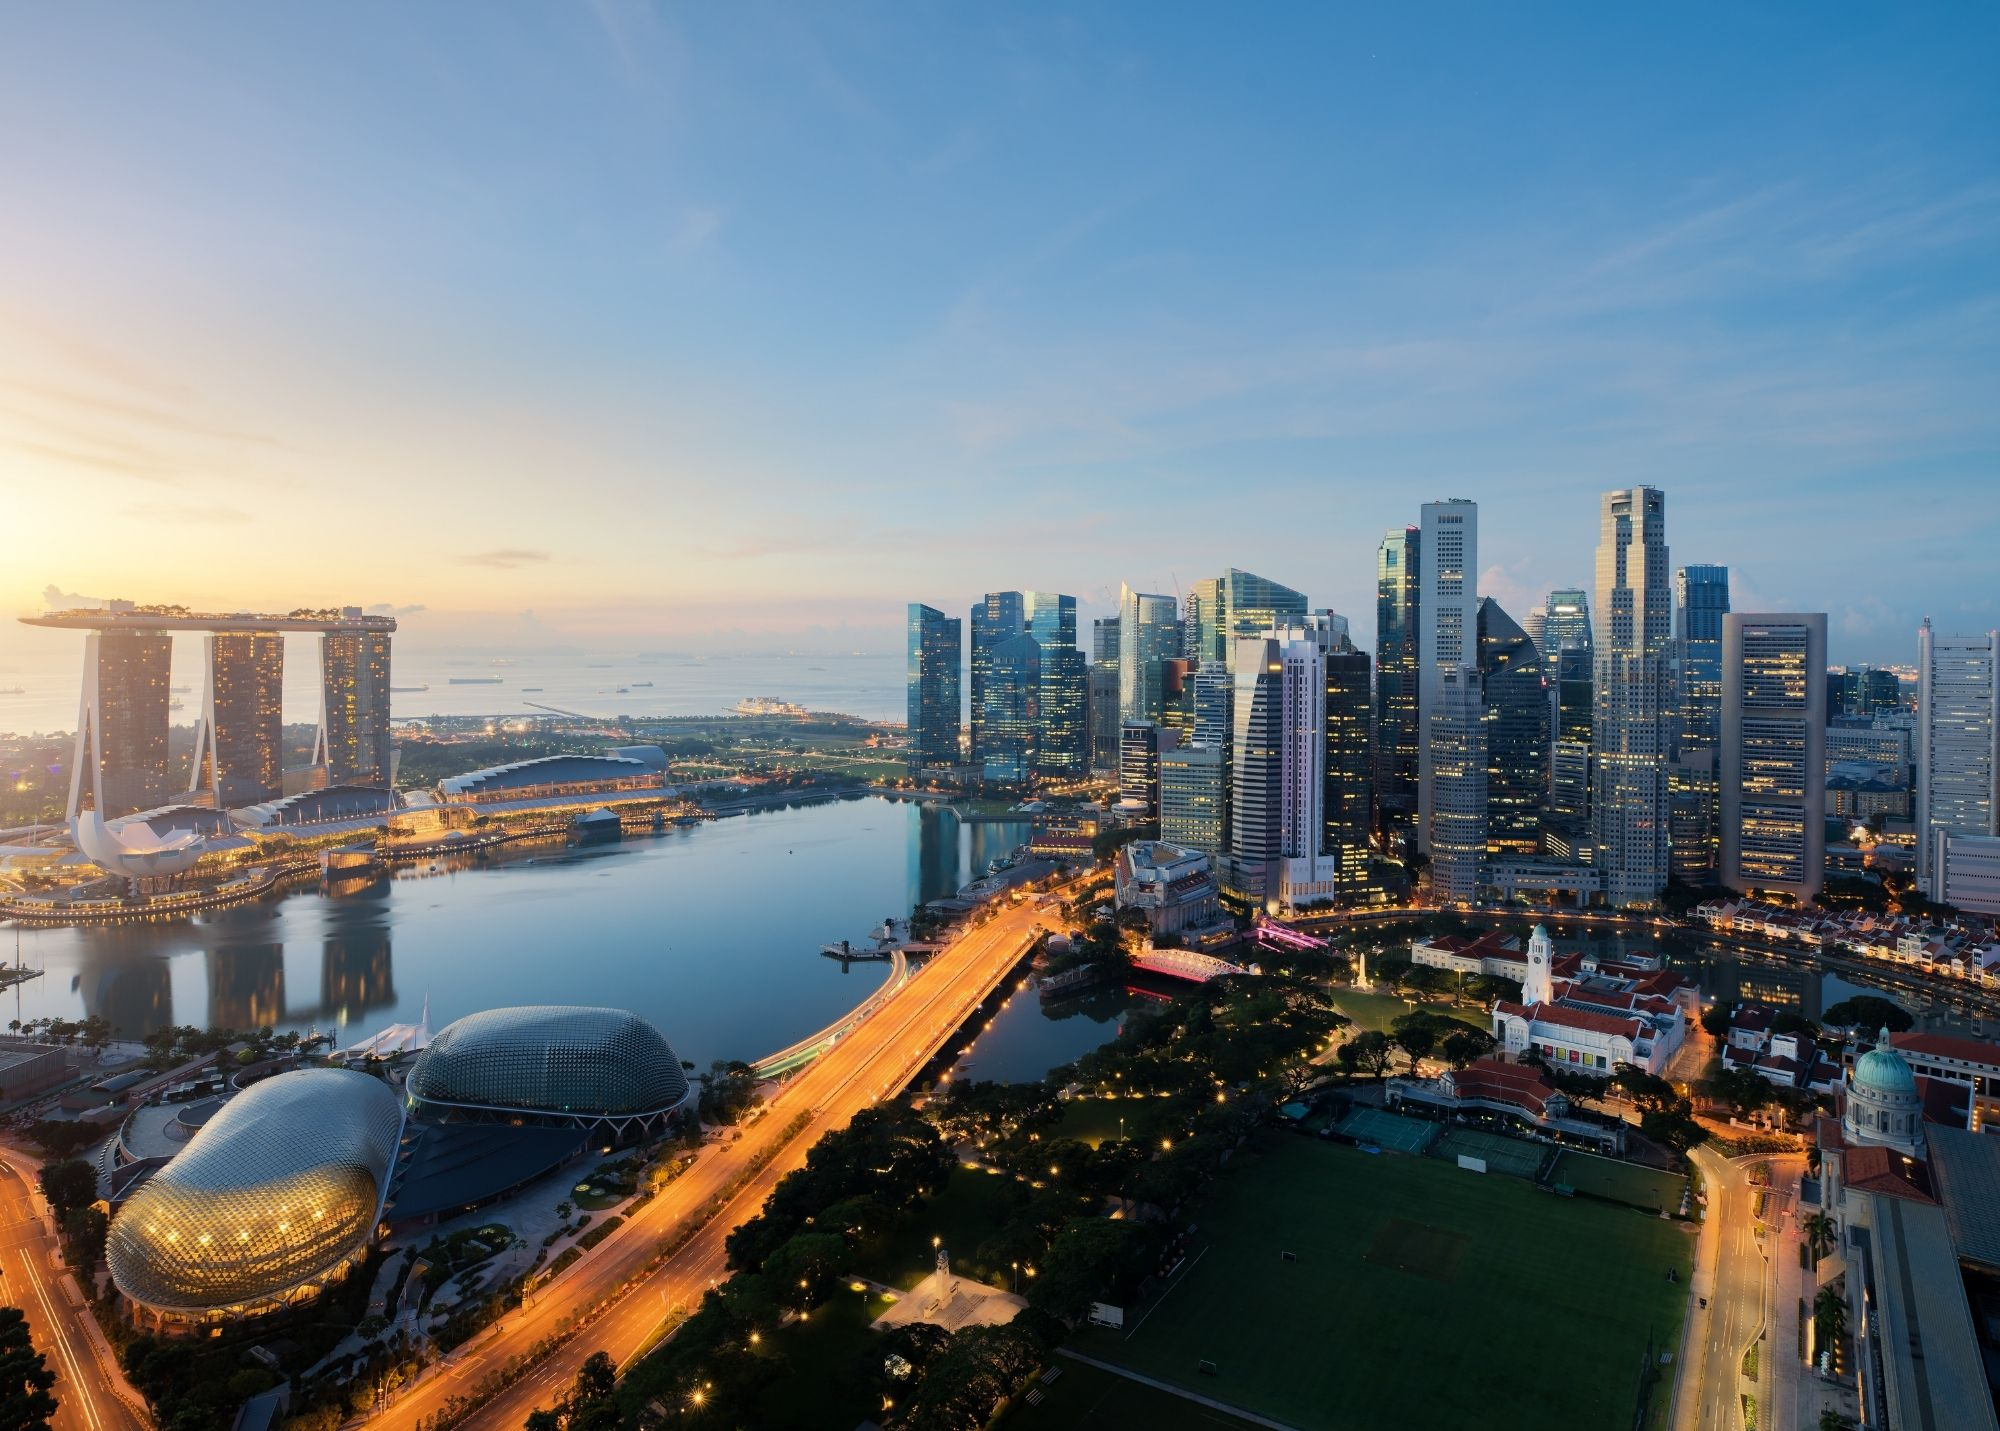 D38   Market Readiness Assistance (MRA) For Singaporean SMEs FT IMG 1105a2020Singapore Cityscape